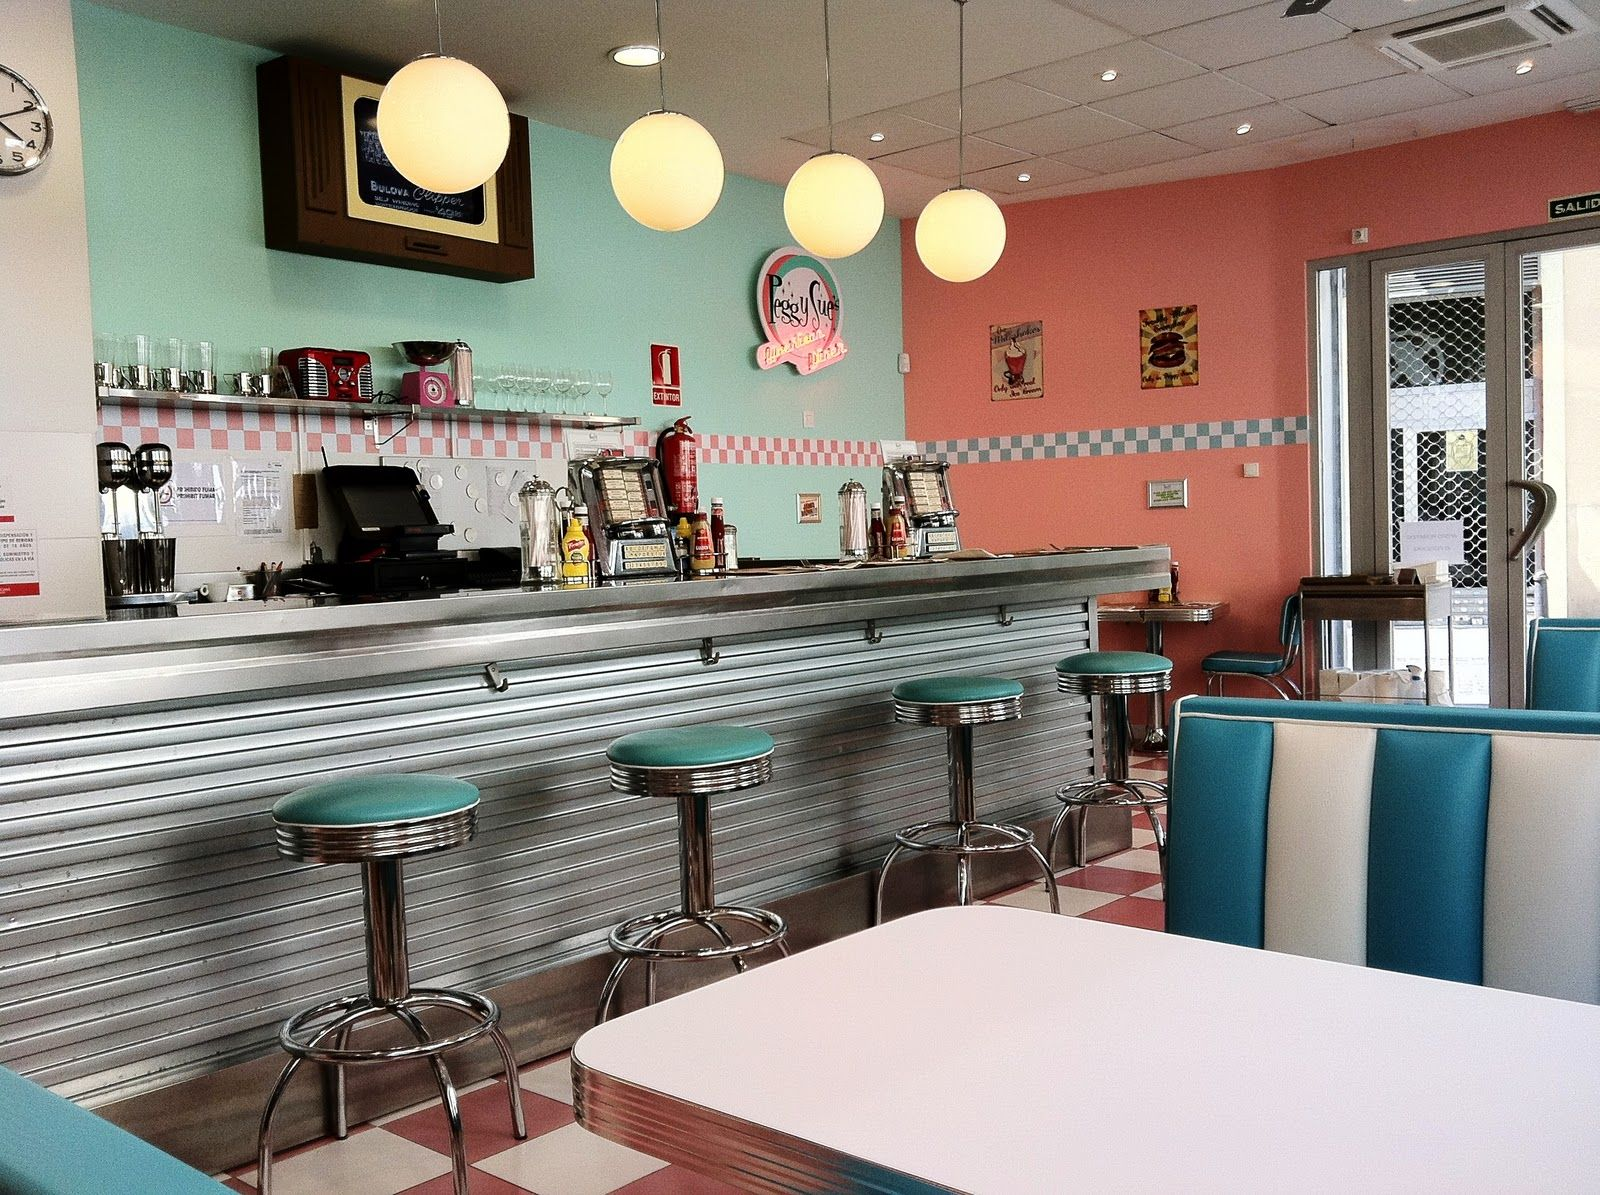 cafe themed kitchen decor commercial flooring options 1950s 1950 39s style american diner in valencia